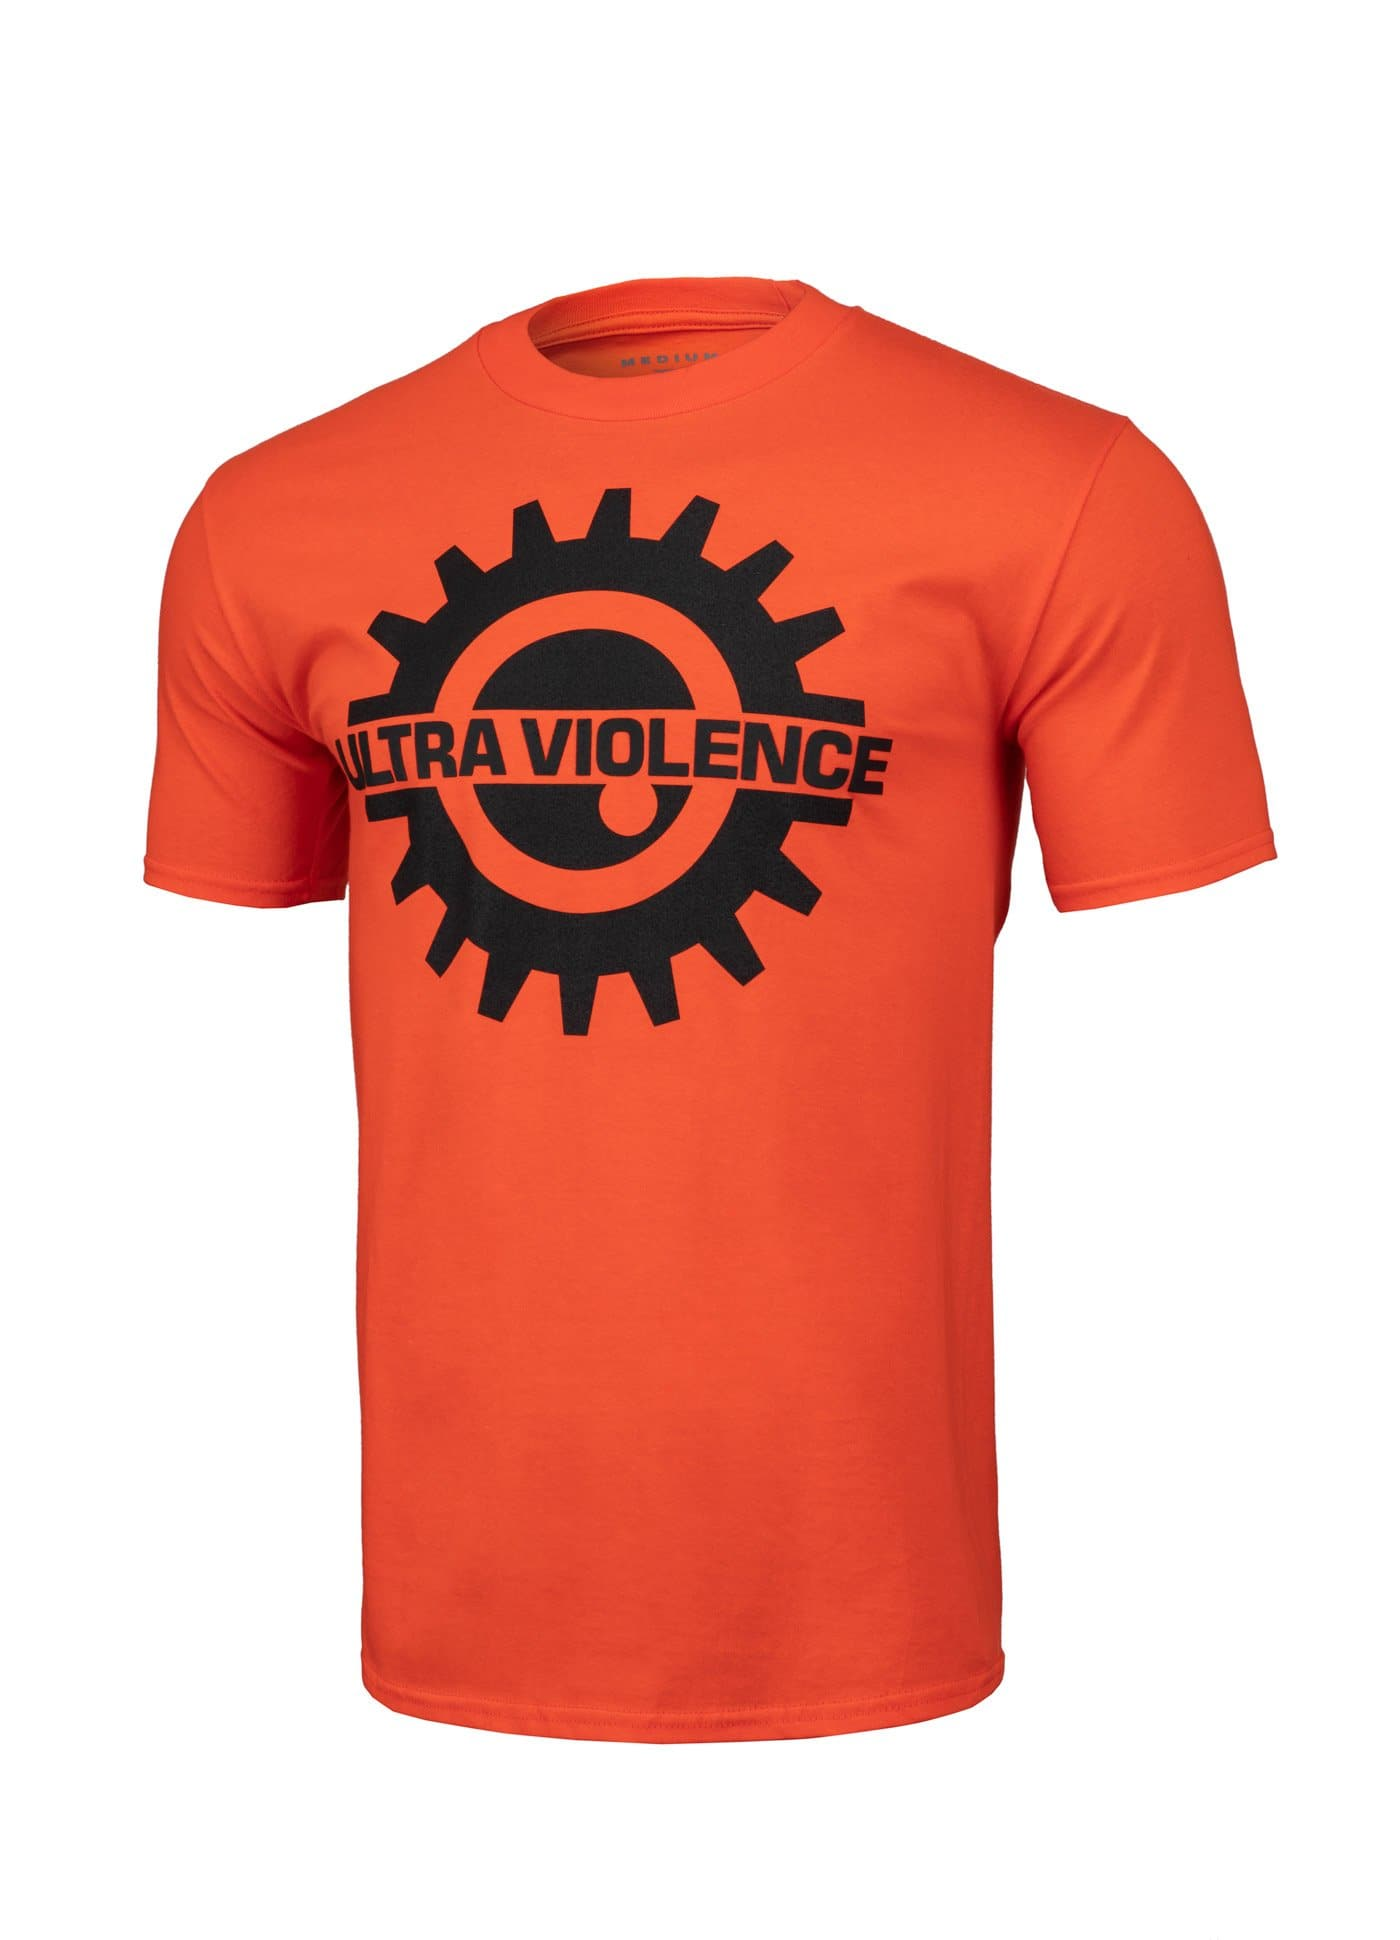 ULTRA VIOLENCE ORANGE